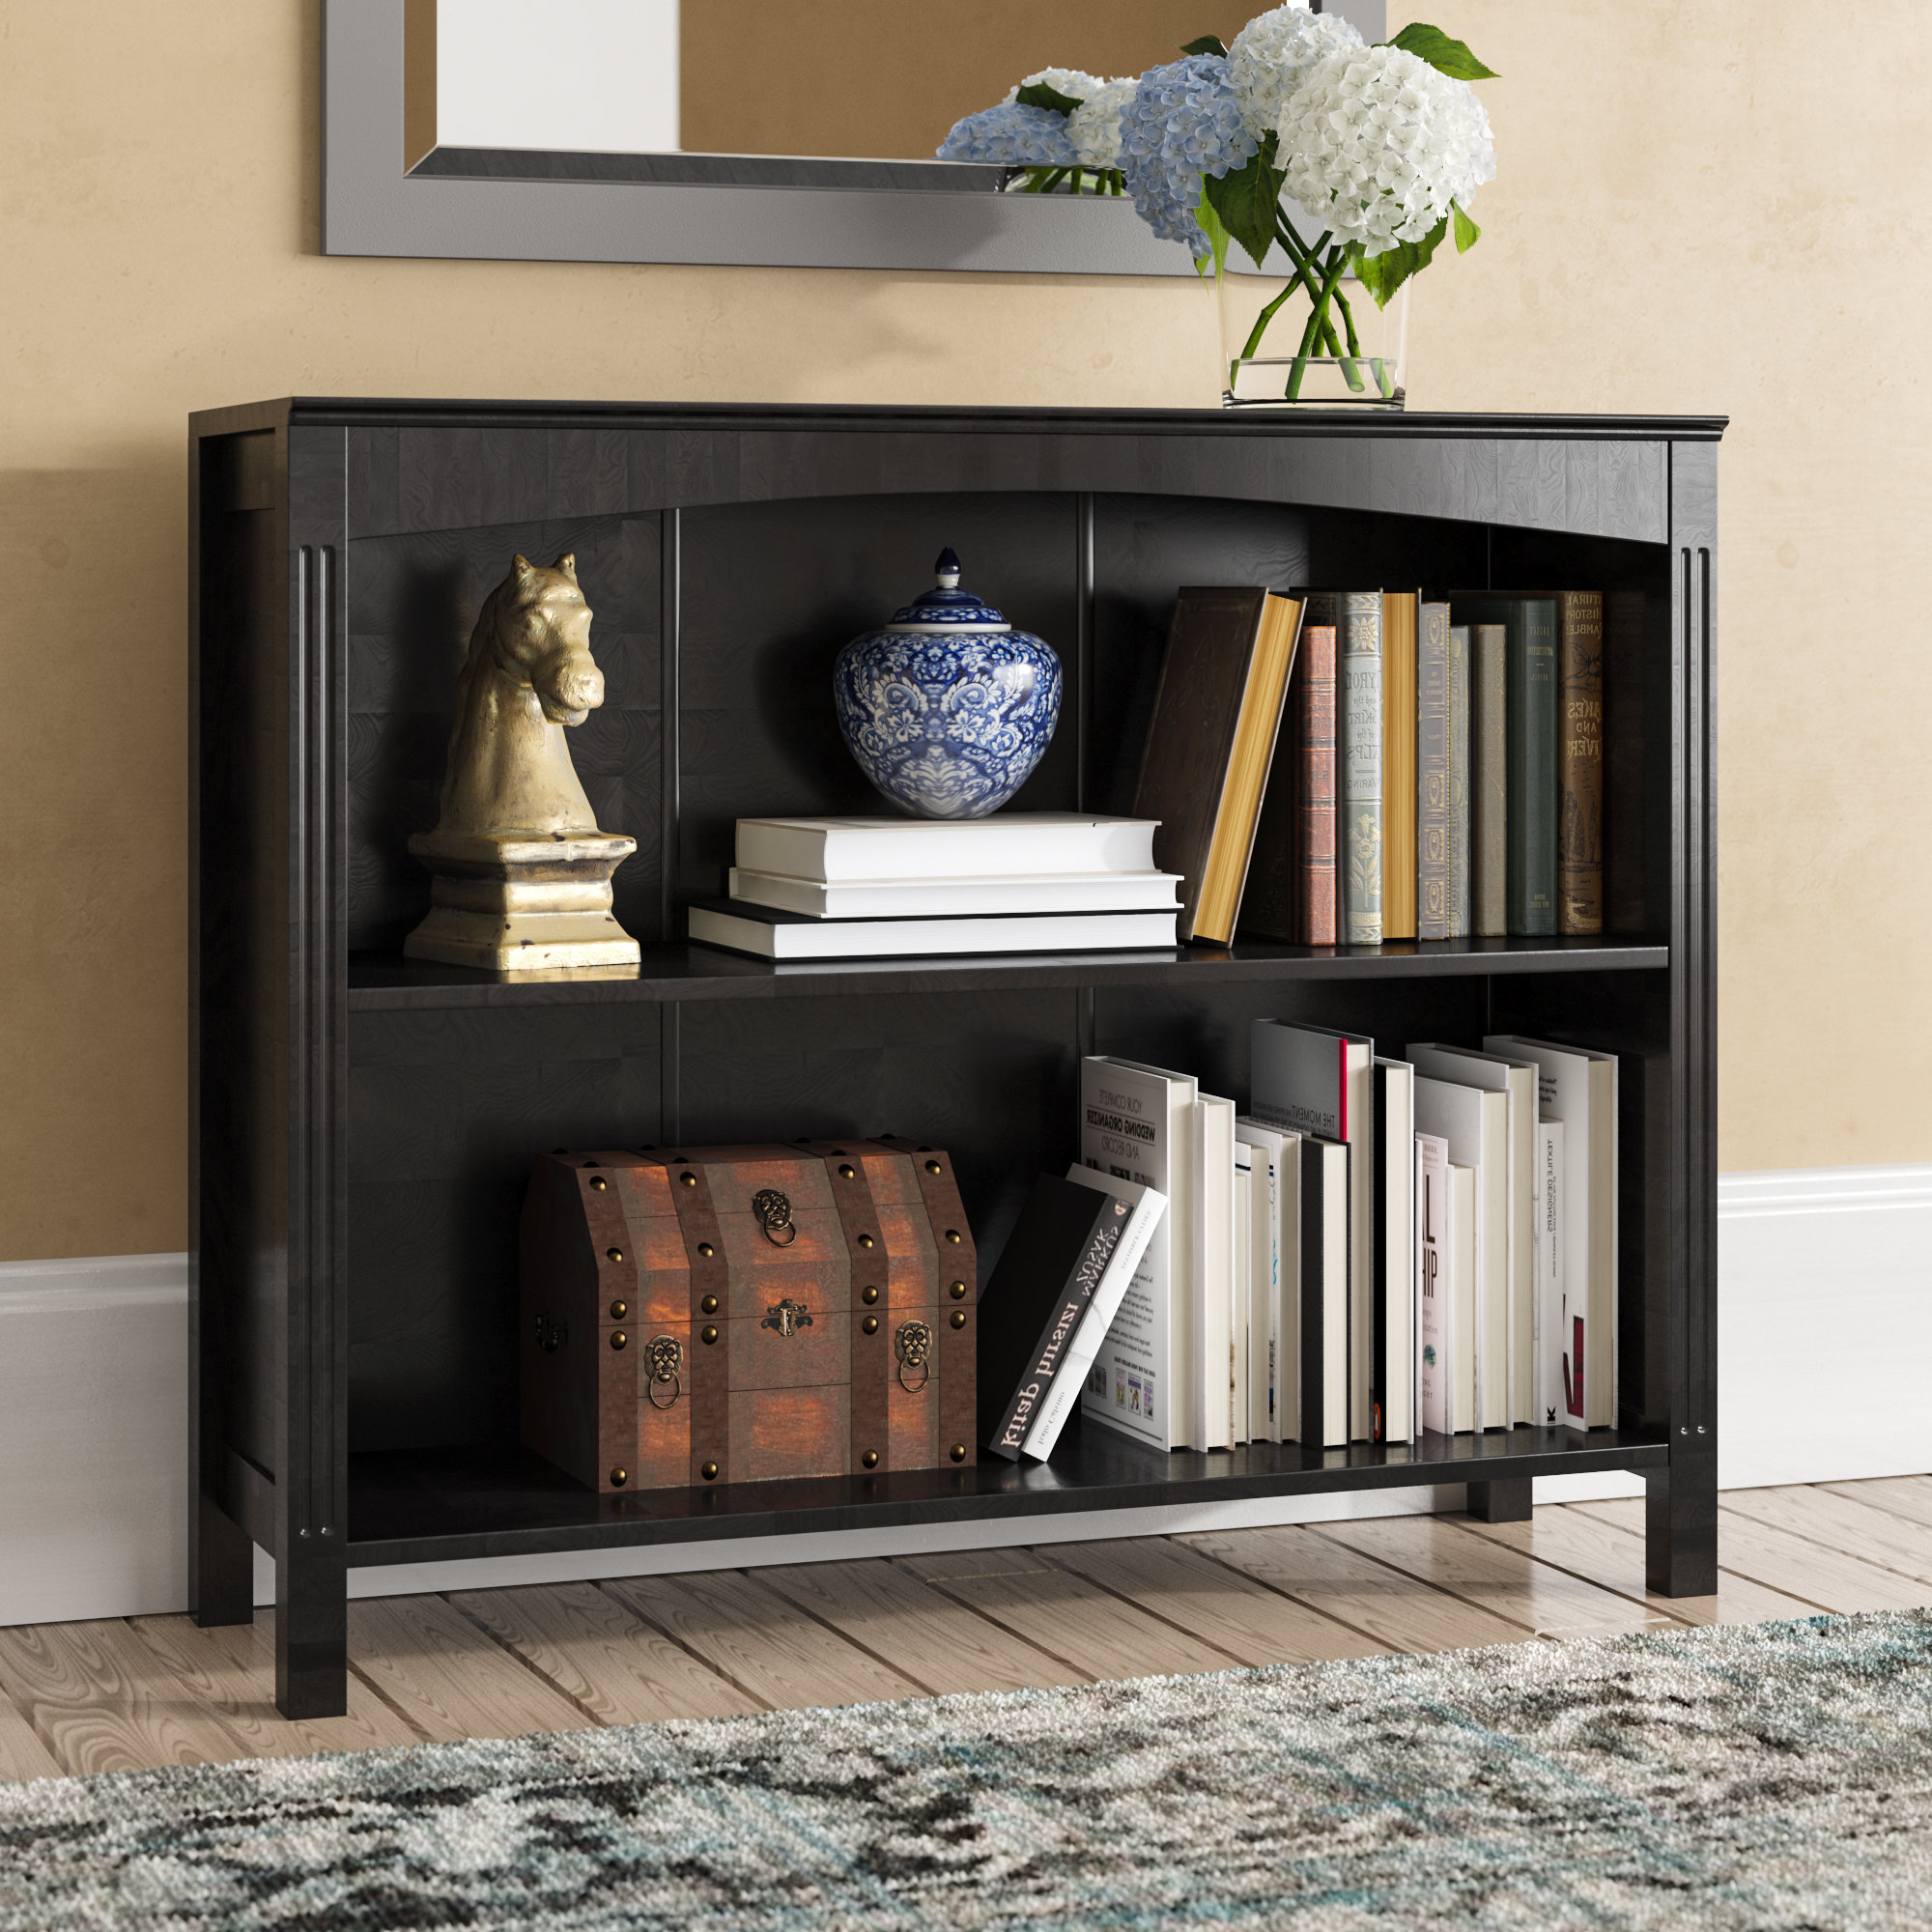 Fashionable Martinsville Standard Bookcases Intended For Martinsville Standard Bookcase (View 3 of 20)